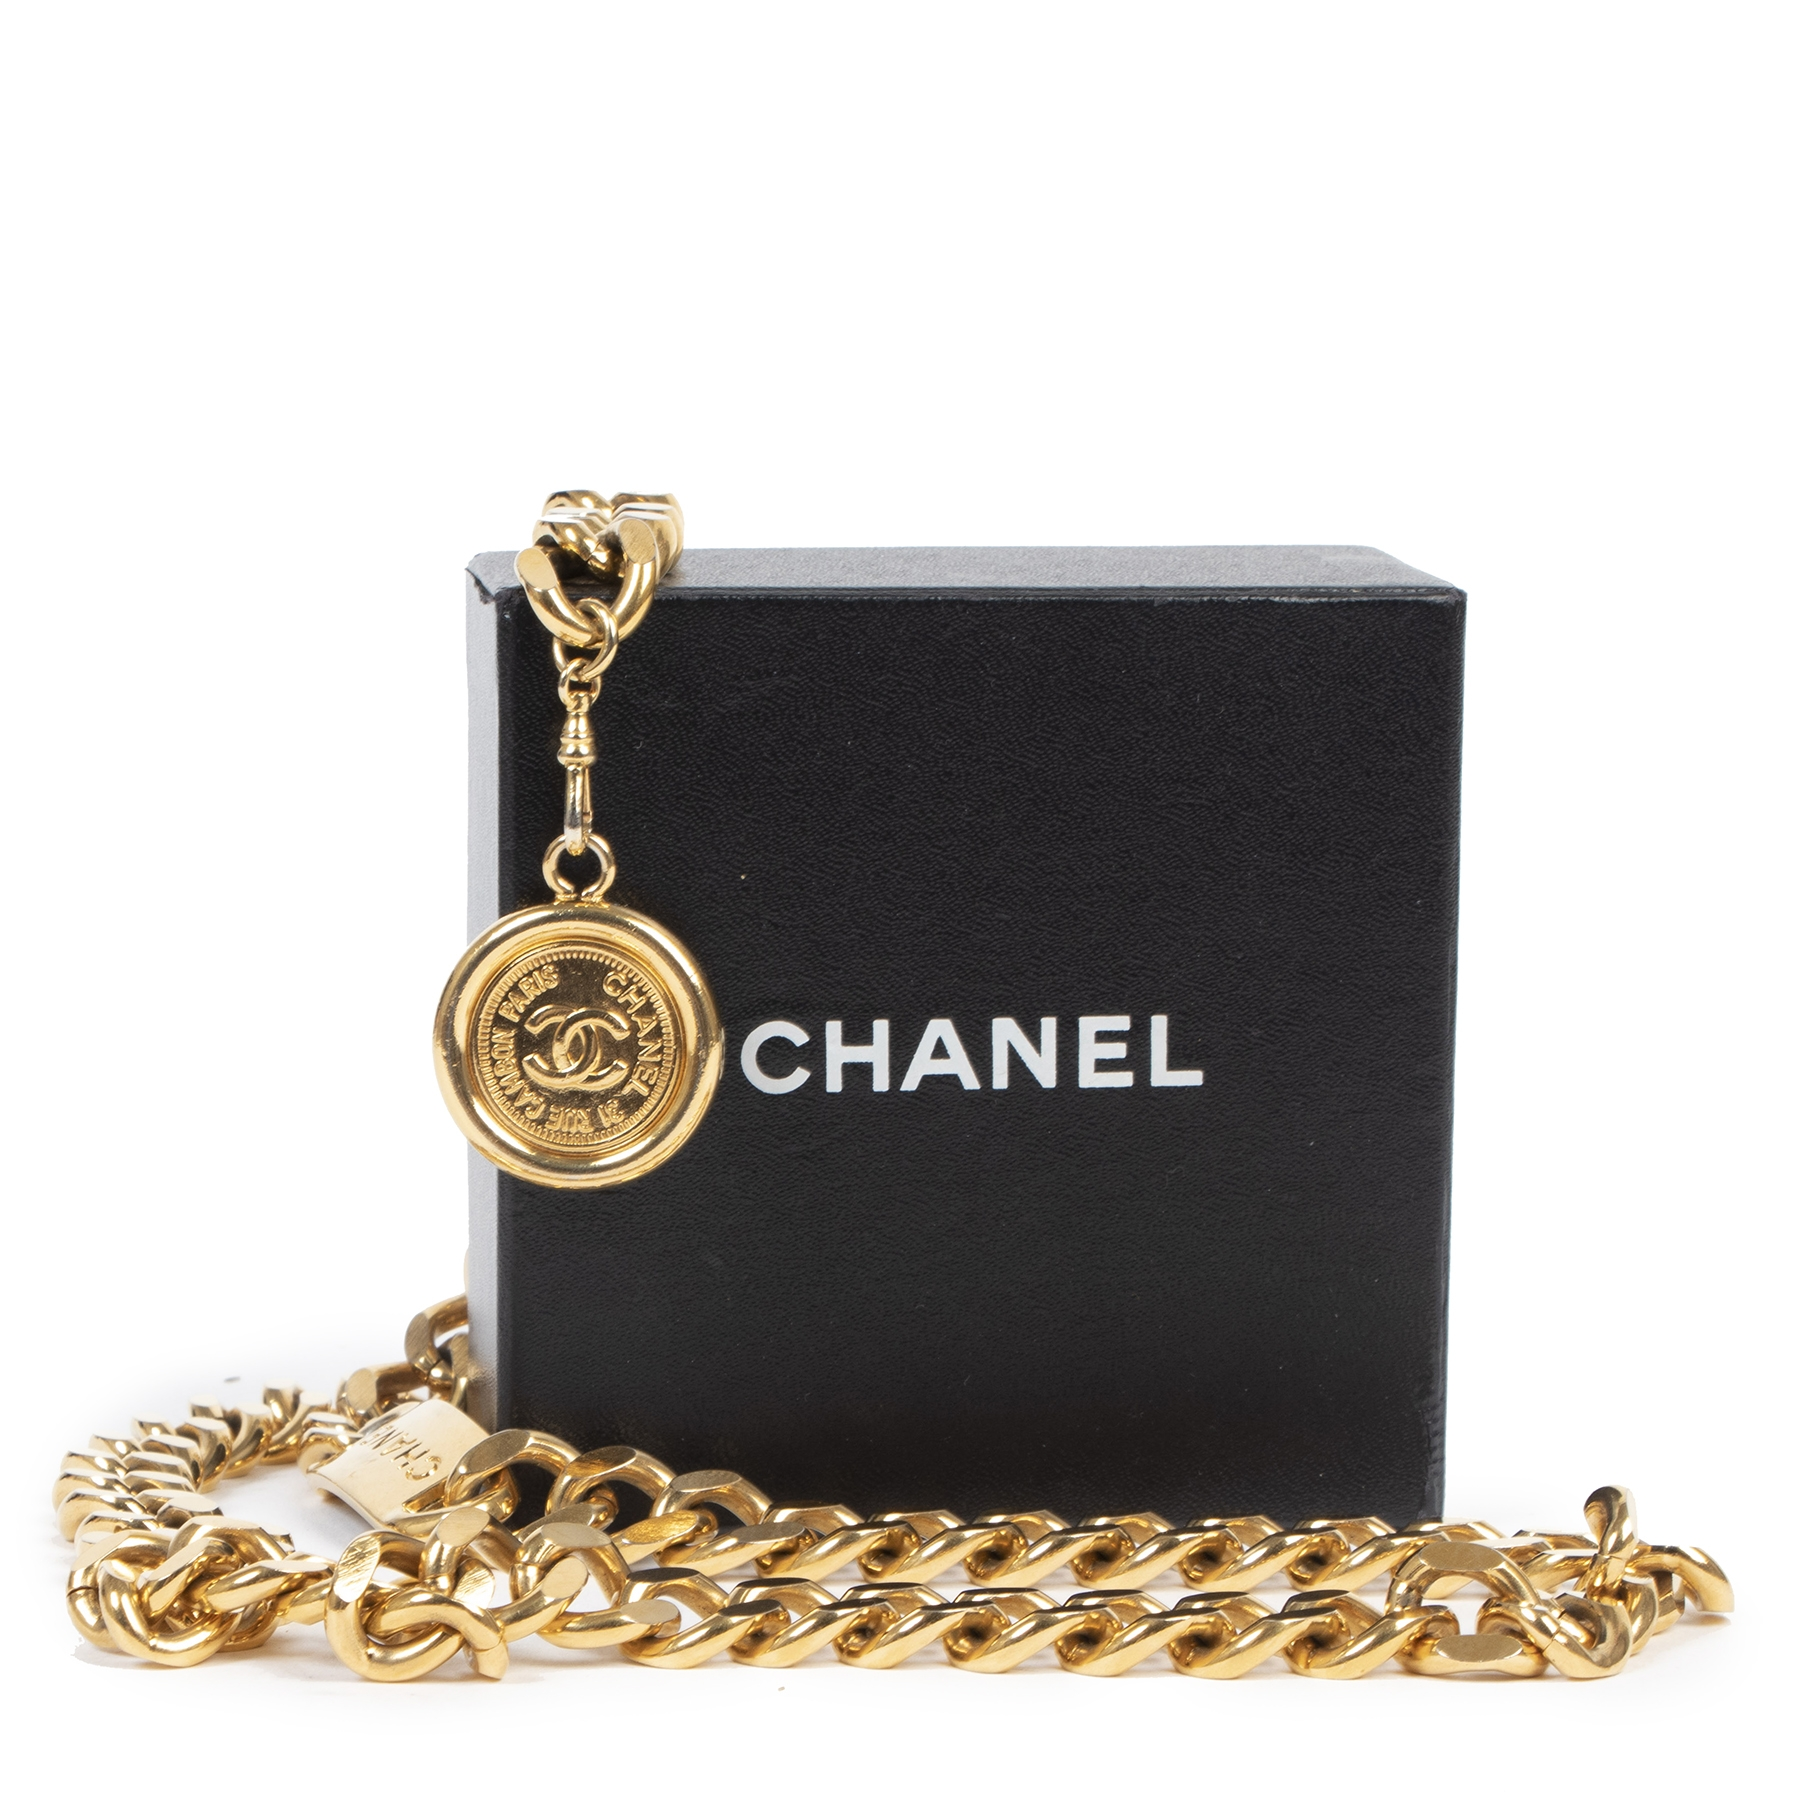 Authentic second-hand vintage Chanel Gold Logo Plate Medallion Chain Belt buy online webshop LabelLOV